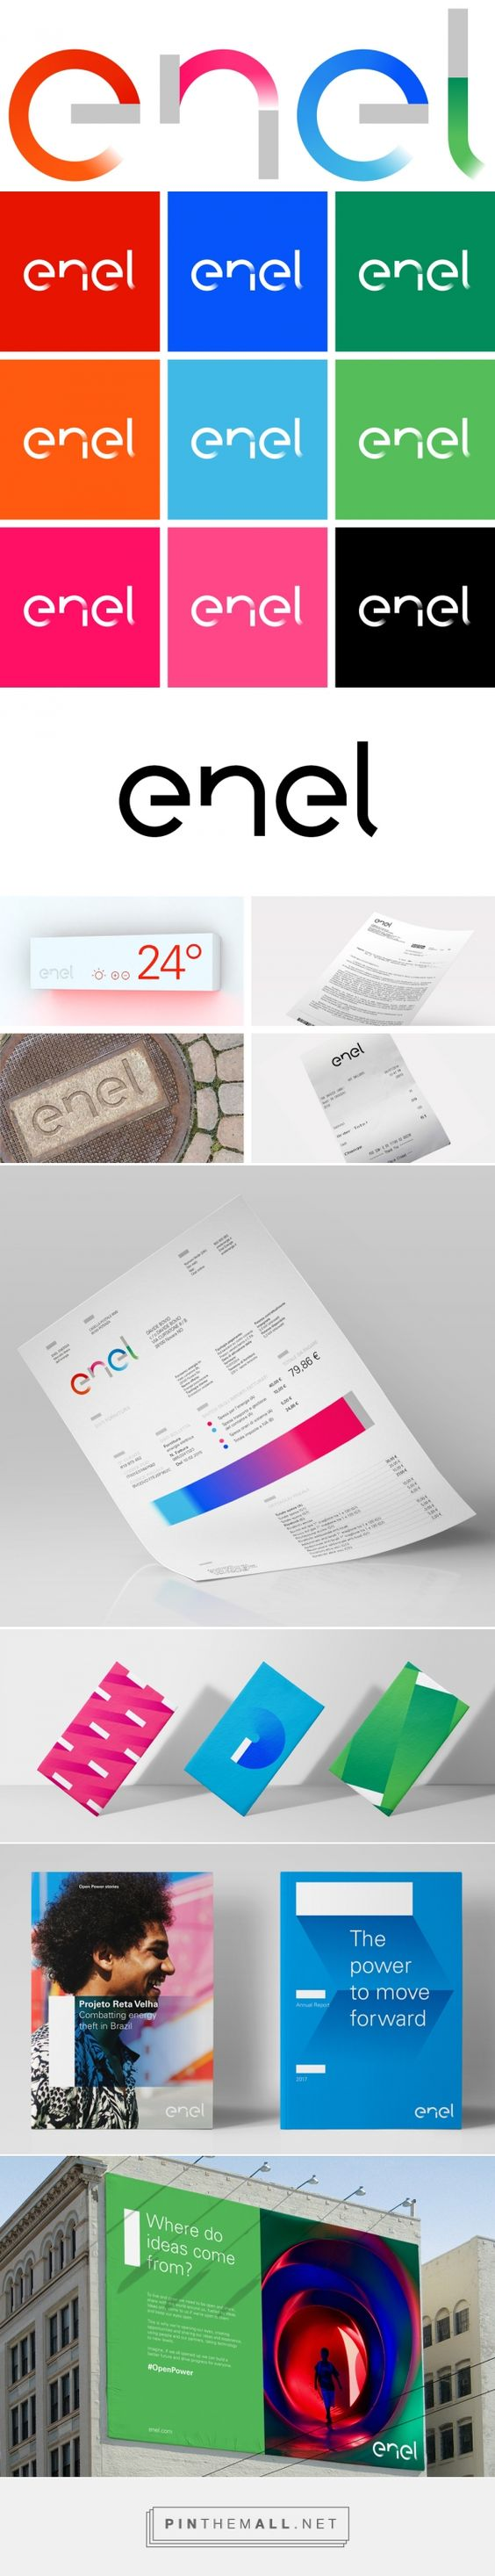 Brand New: New Logo and Identity for Enel by Wolff Olins... - a grouped images picture - Pin Them All